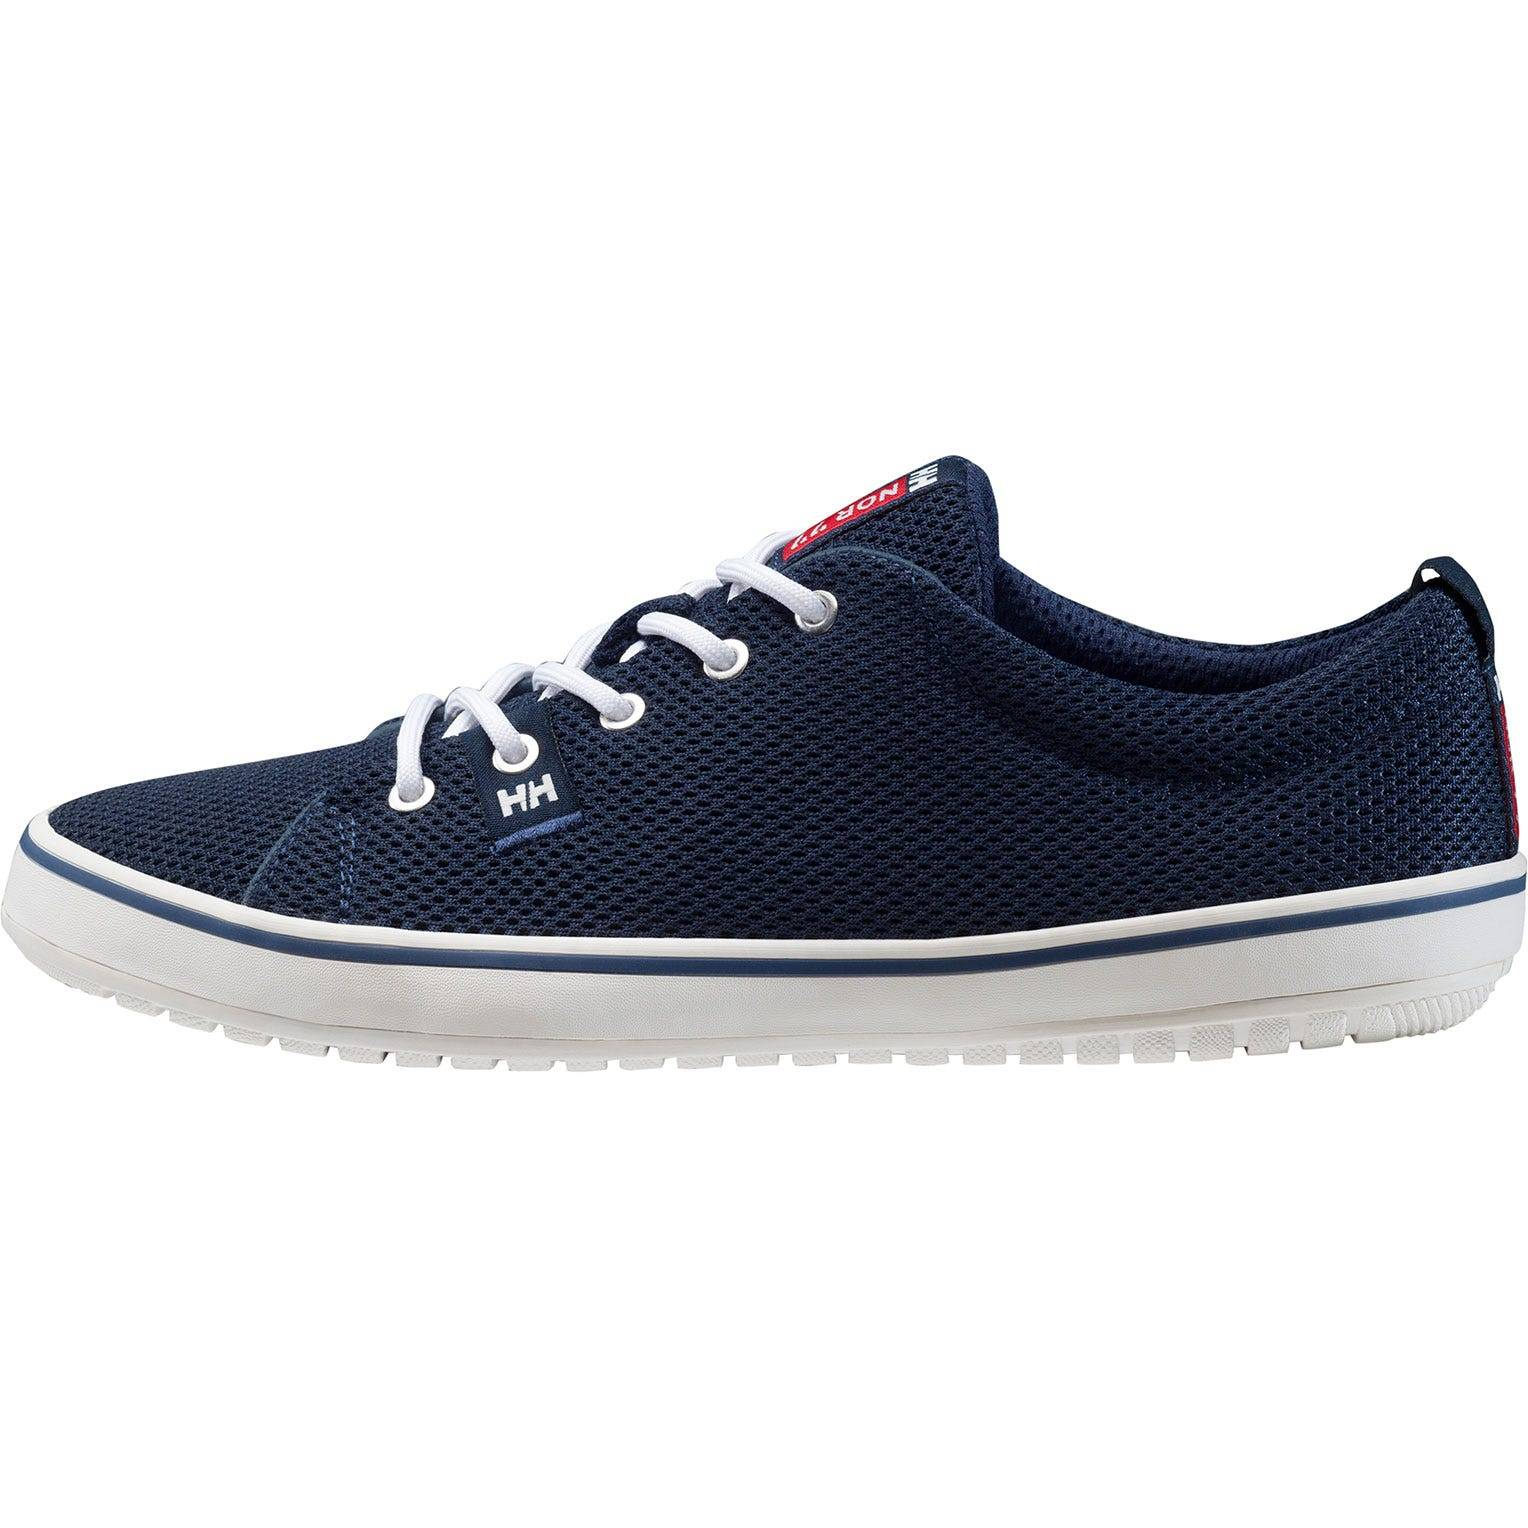 Helly Hansen W Scurry 2 Womens Casual Shoe Navy 36/5.5